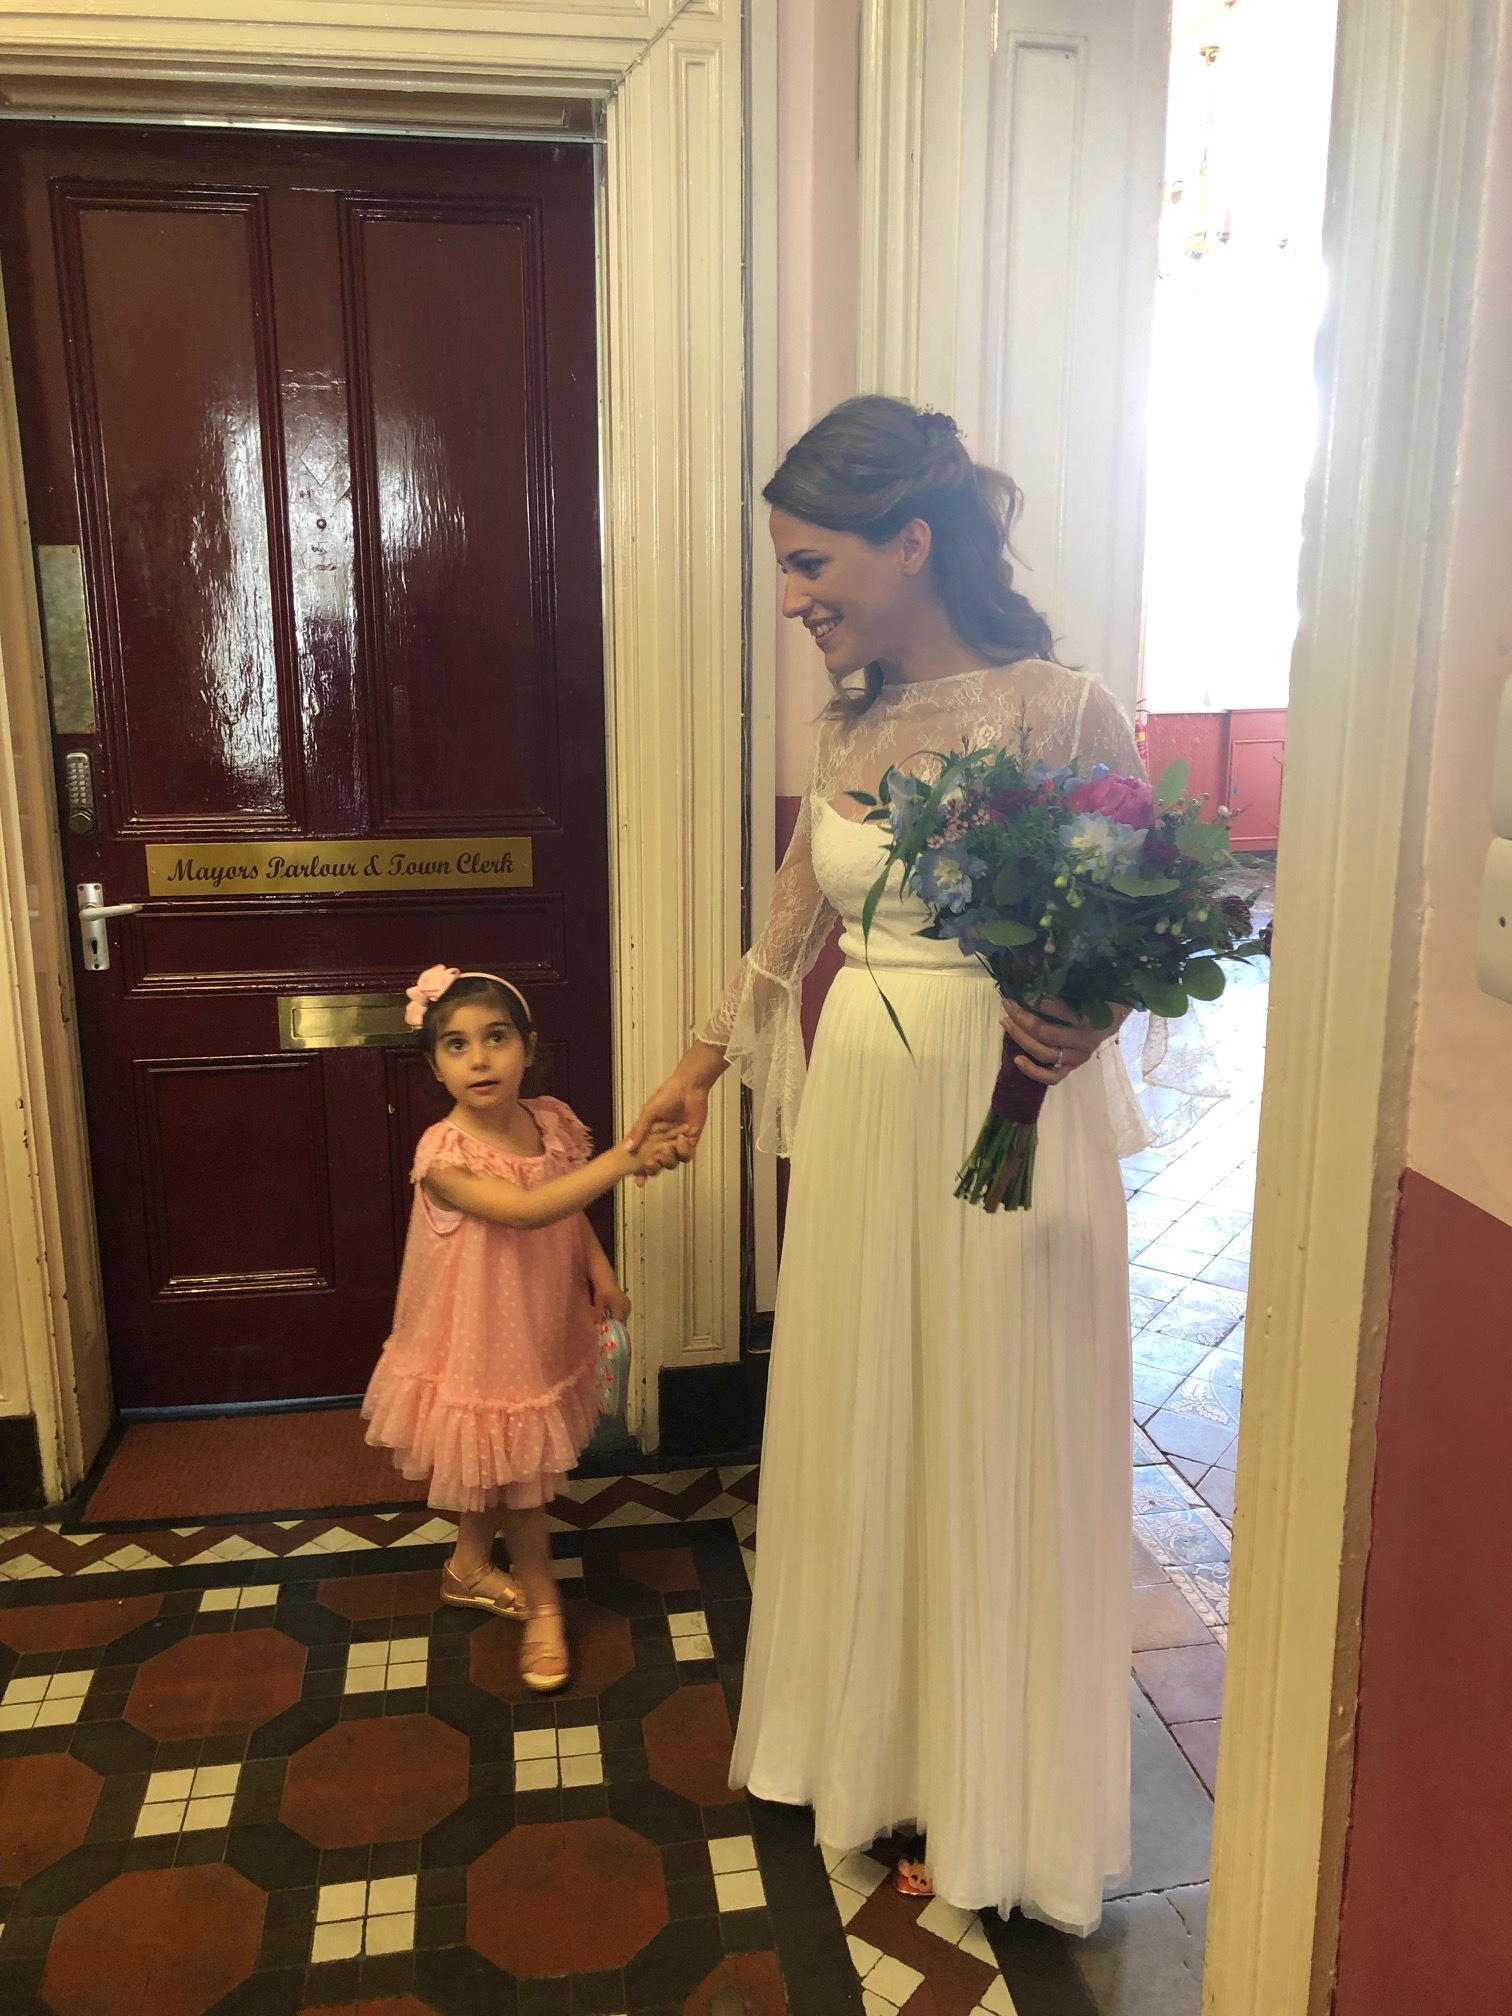 After Italy, we took our yearly holiday to the UK; our niece and nephews beautiful wedding in England - I wish there were more weddings to go to! They are so joyful!